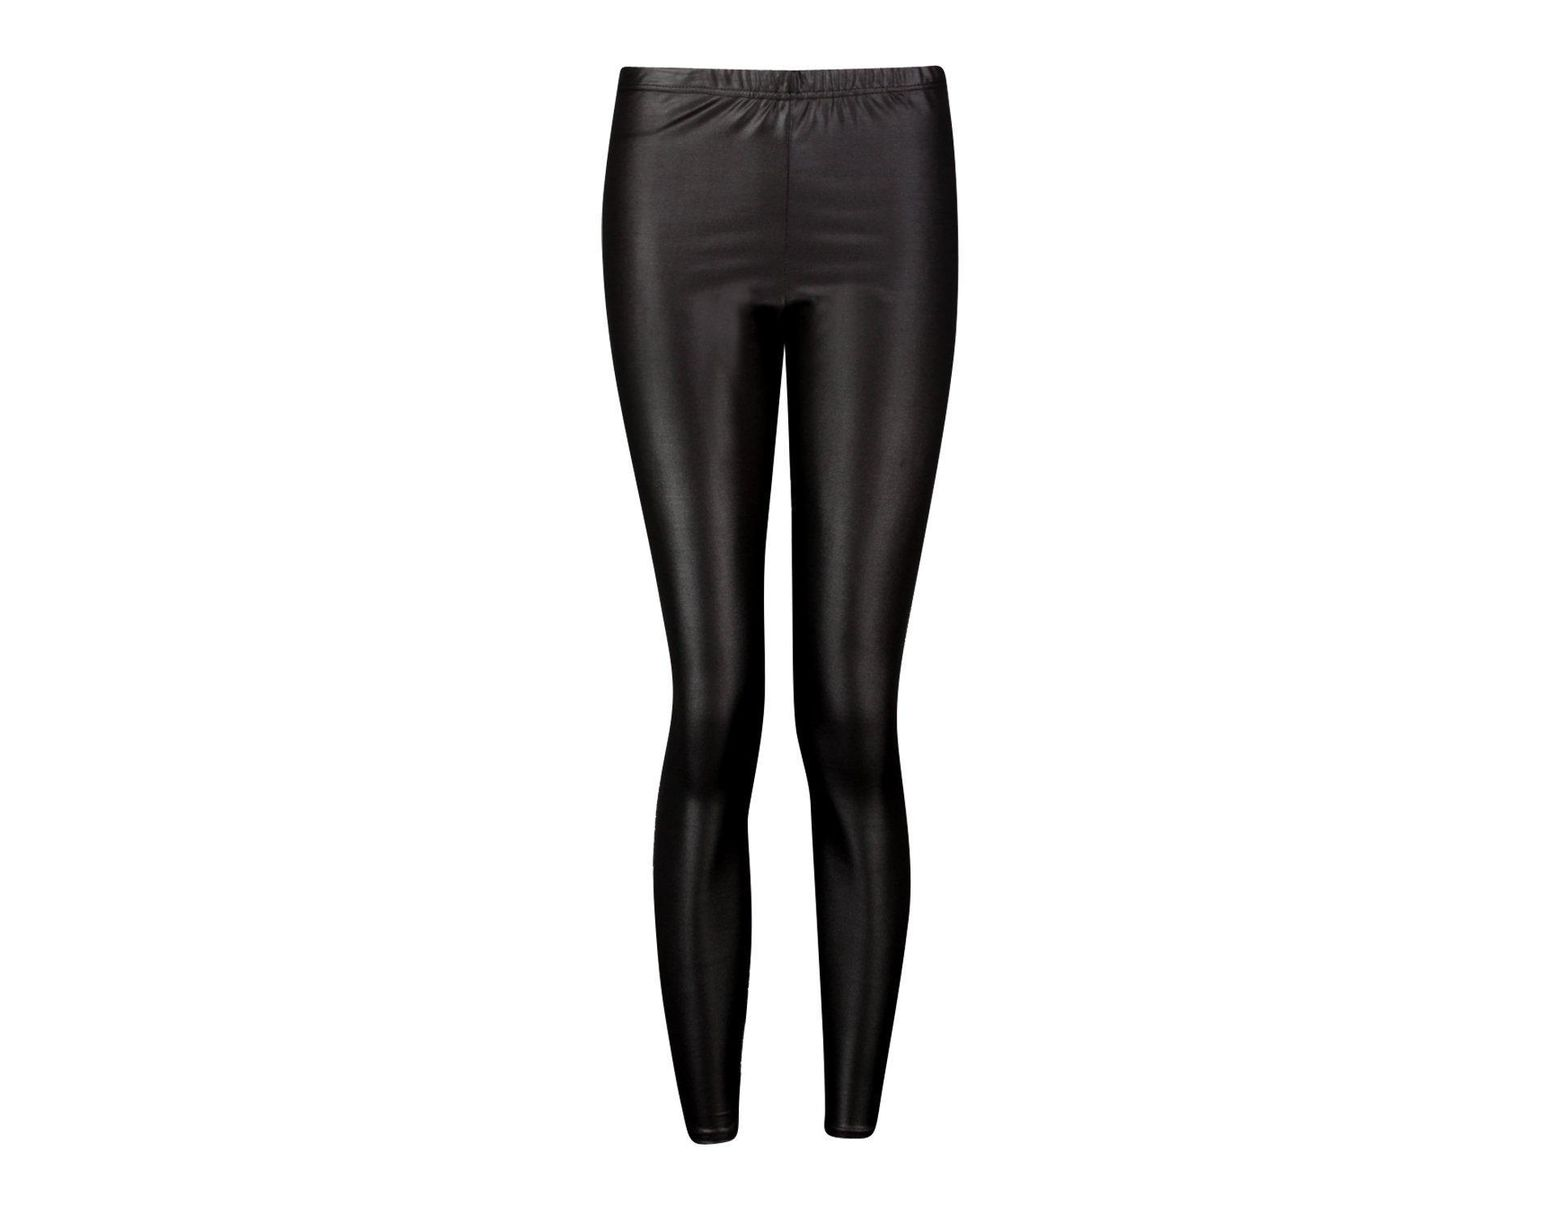 829089618329 Boohoo Wet Look Leggings in Black - Lyst